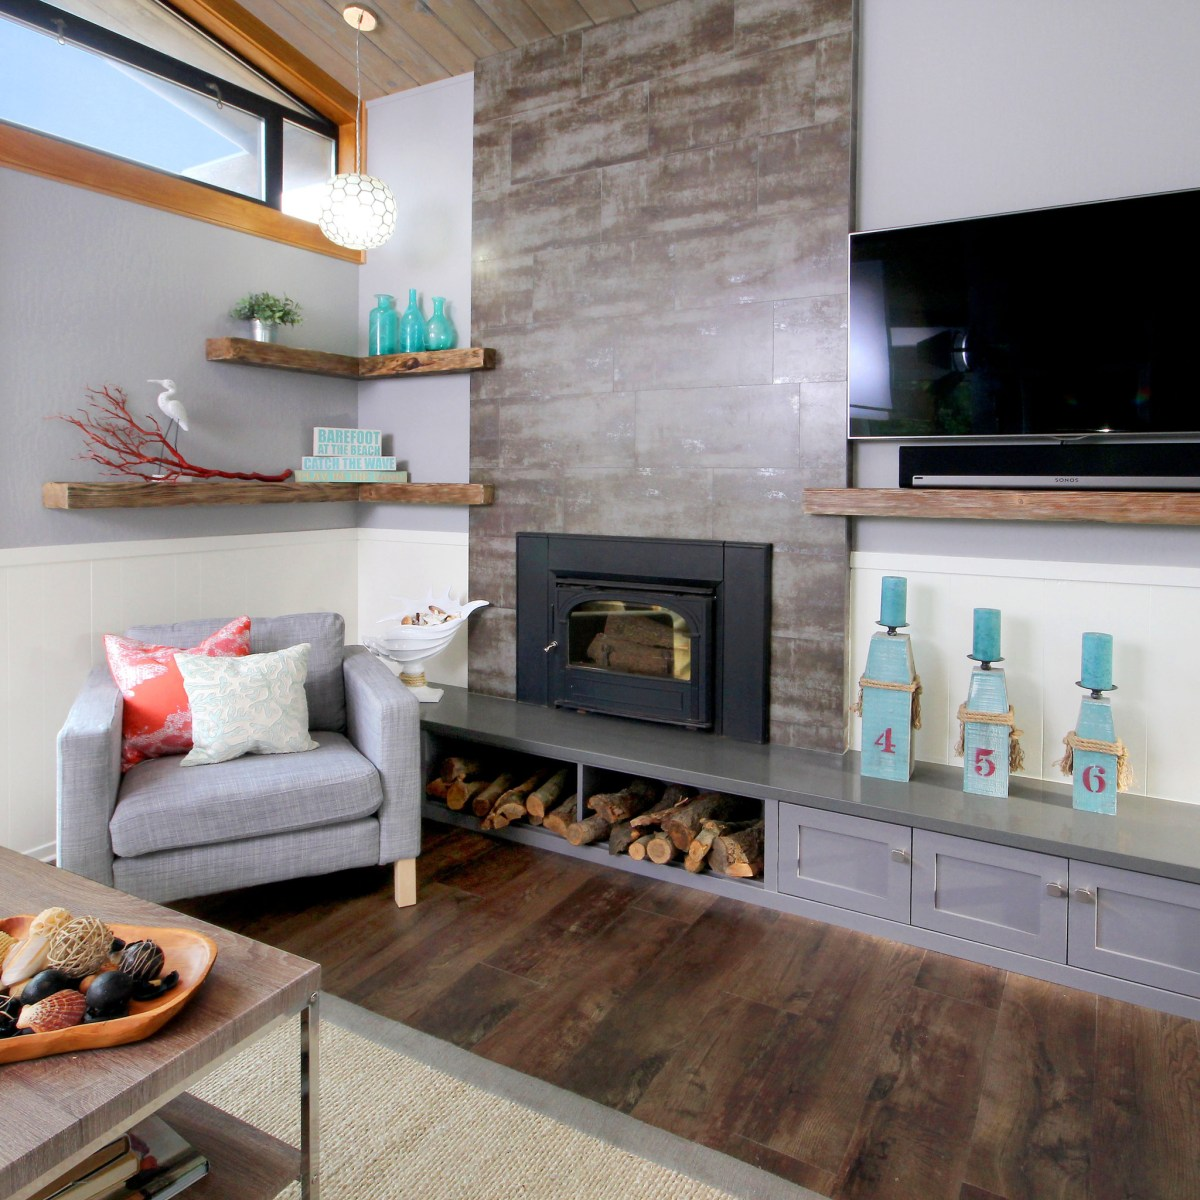 Home Basics: How to Choose Stone or Tile Flooring